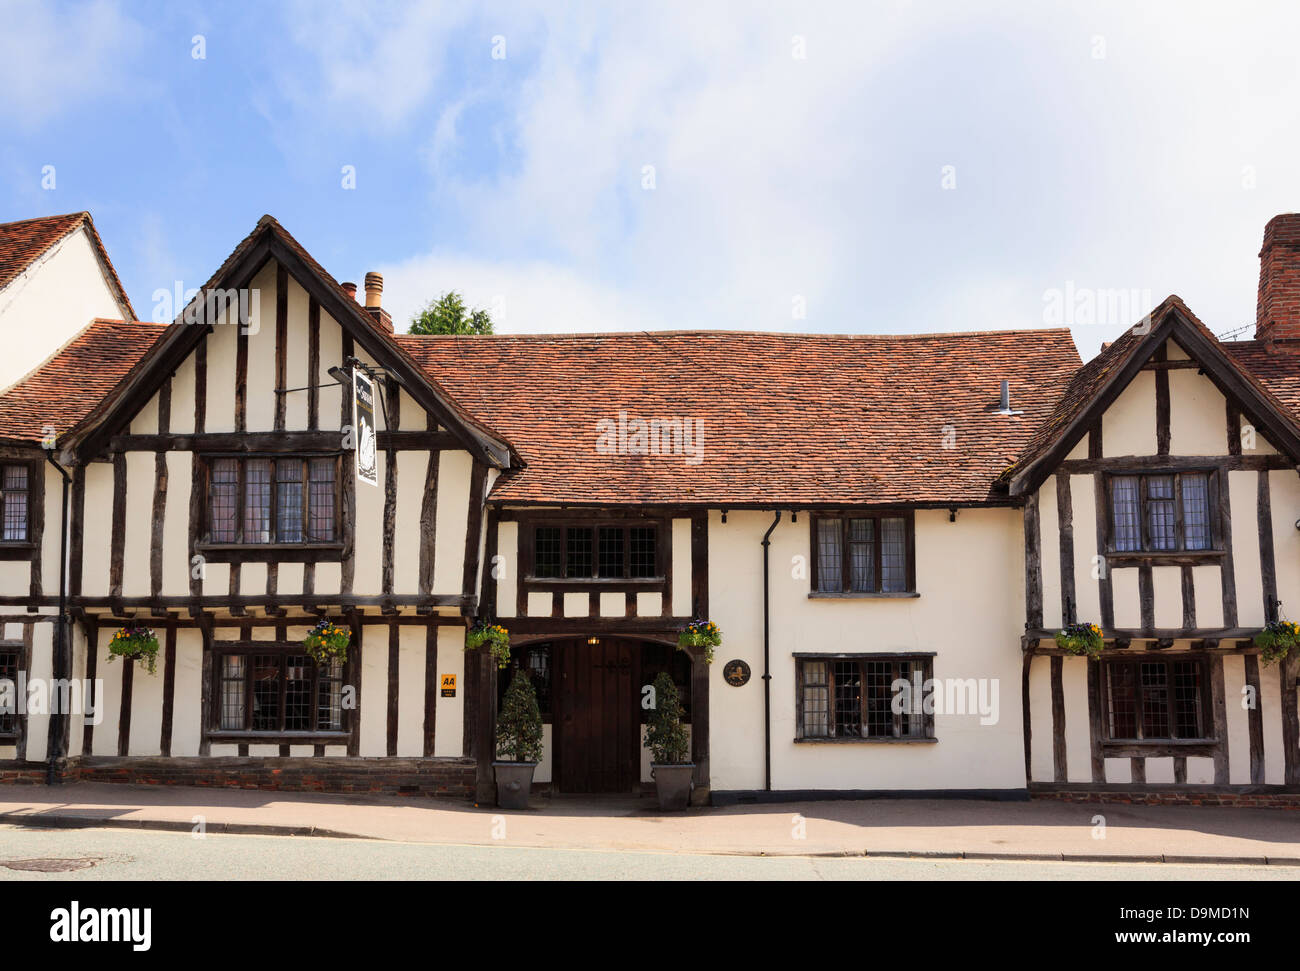 15th century Swan Hotel in a timbered building in Lavenham, Suffolk, England, UK, Britain - Stock Image